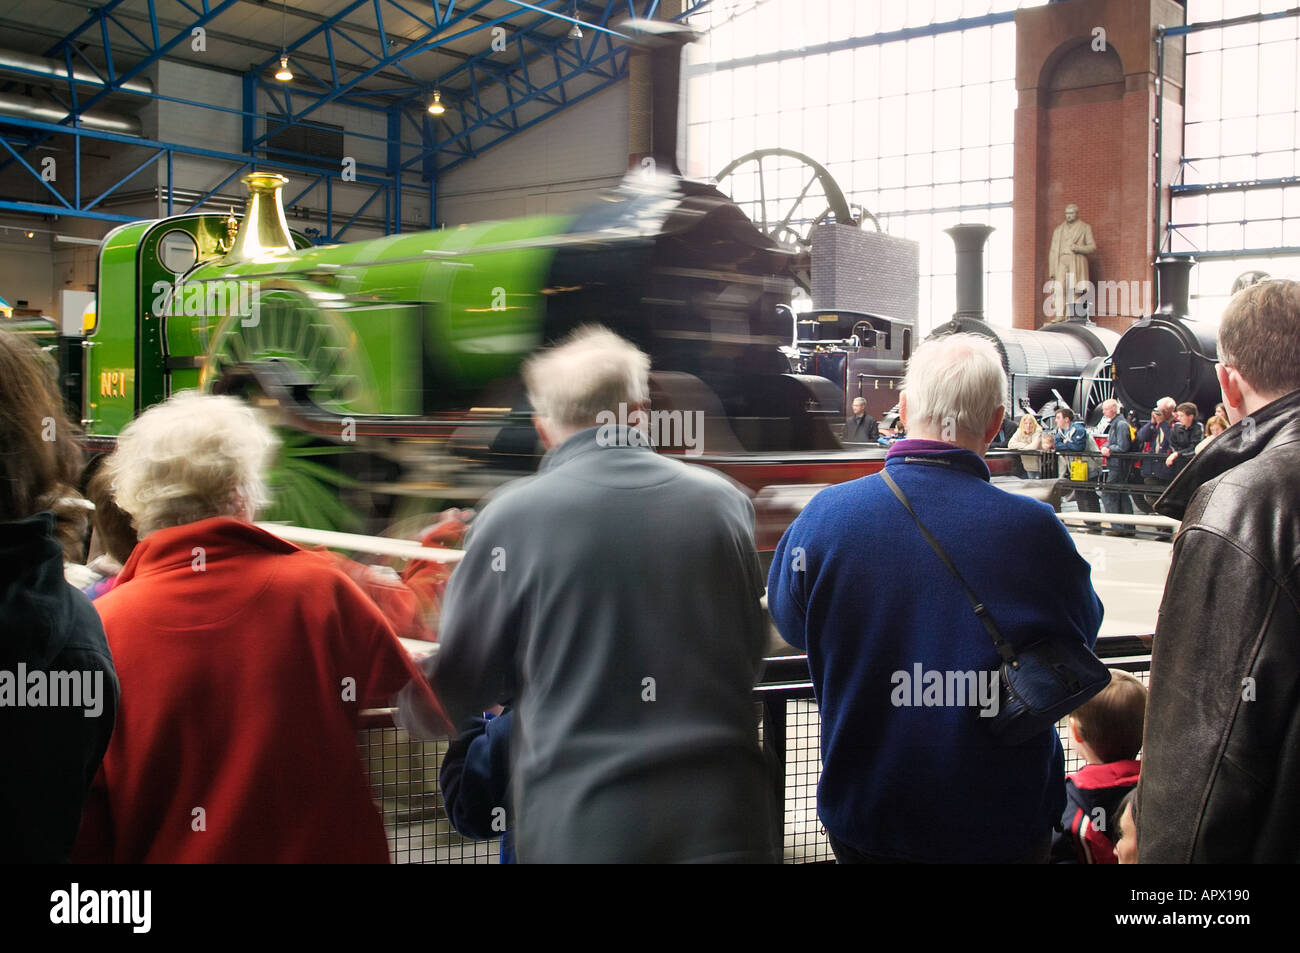 Stirling Single No1 locomotive on the turntable at the National Railway Museum York watched by visitors - Stock Image